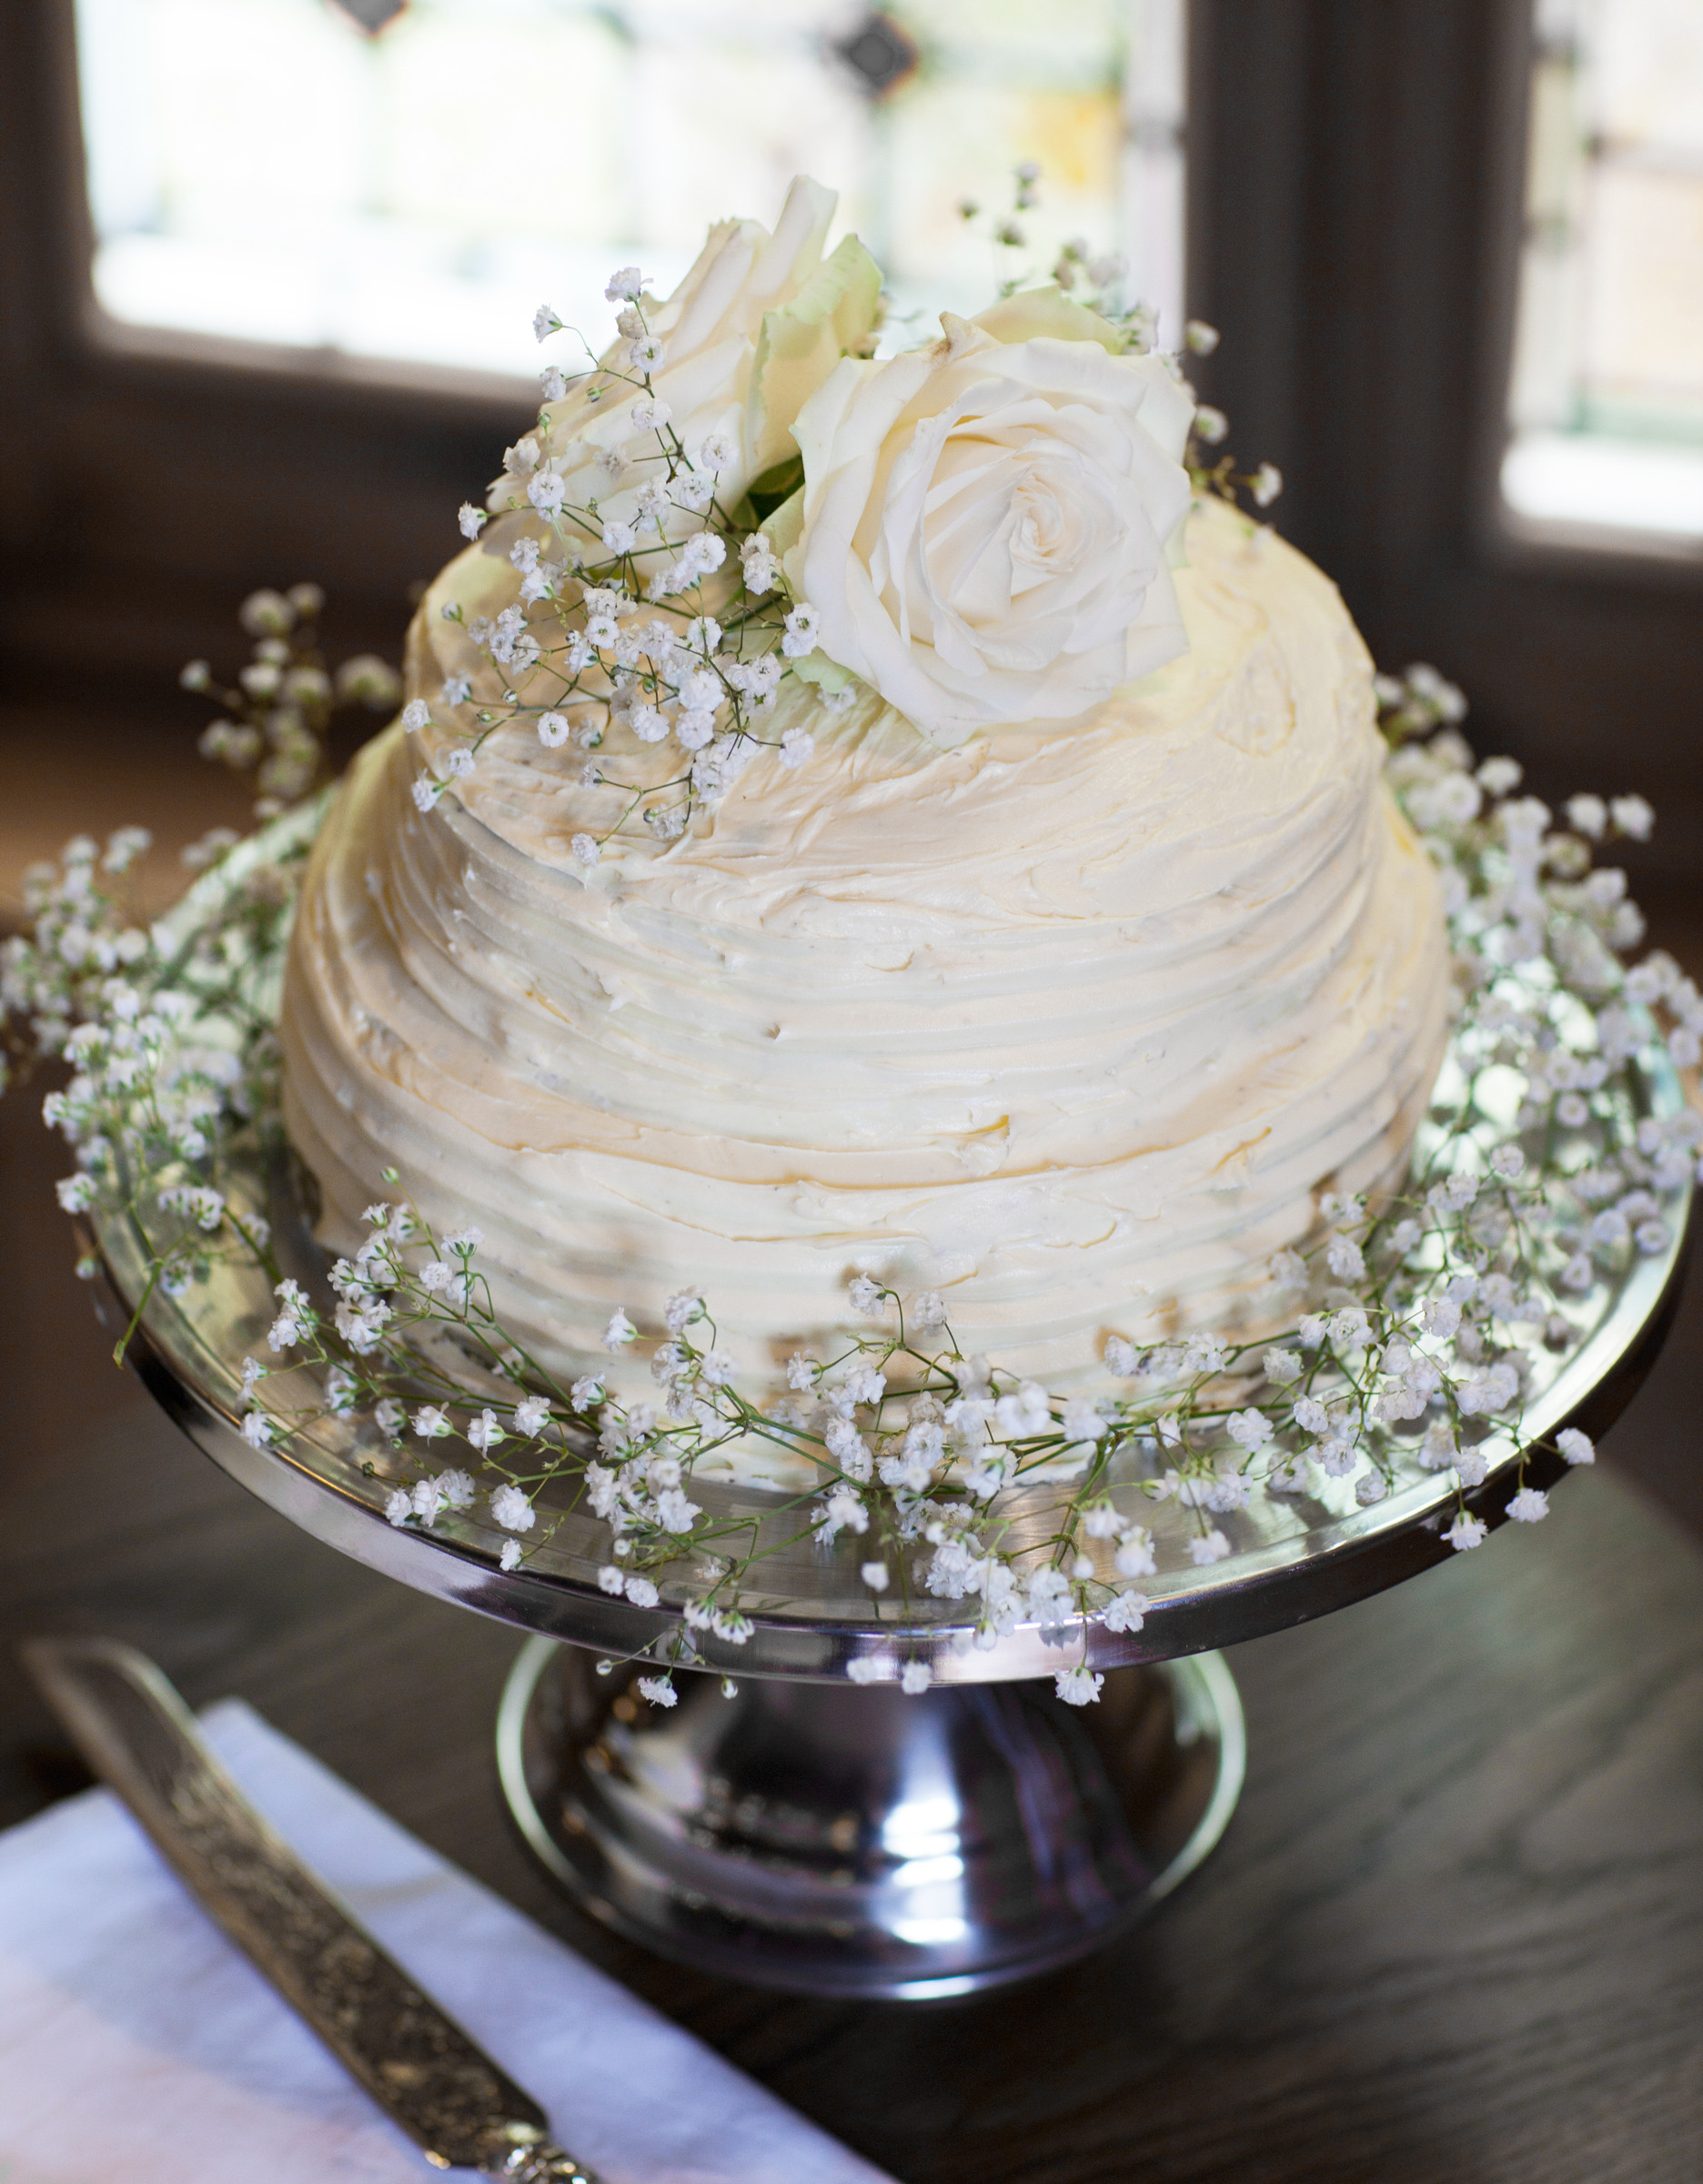 Wedding Cakes With Buttercream Icing  DIY Wedding How to make your own wedding cake